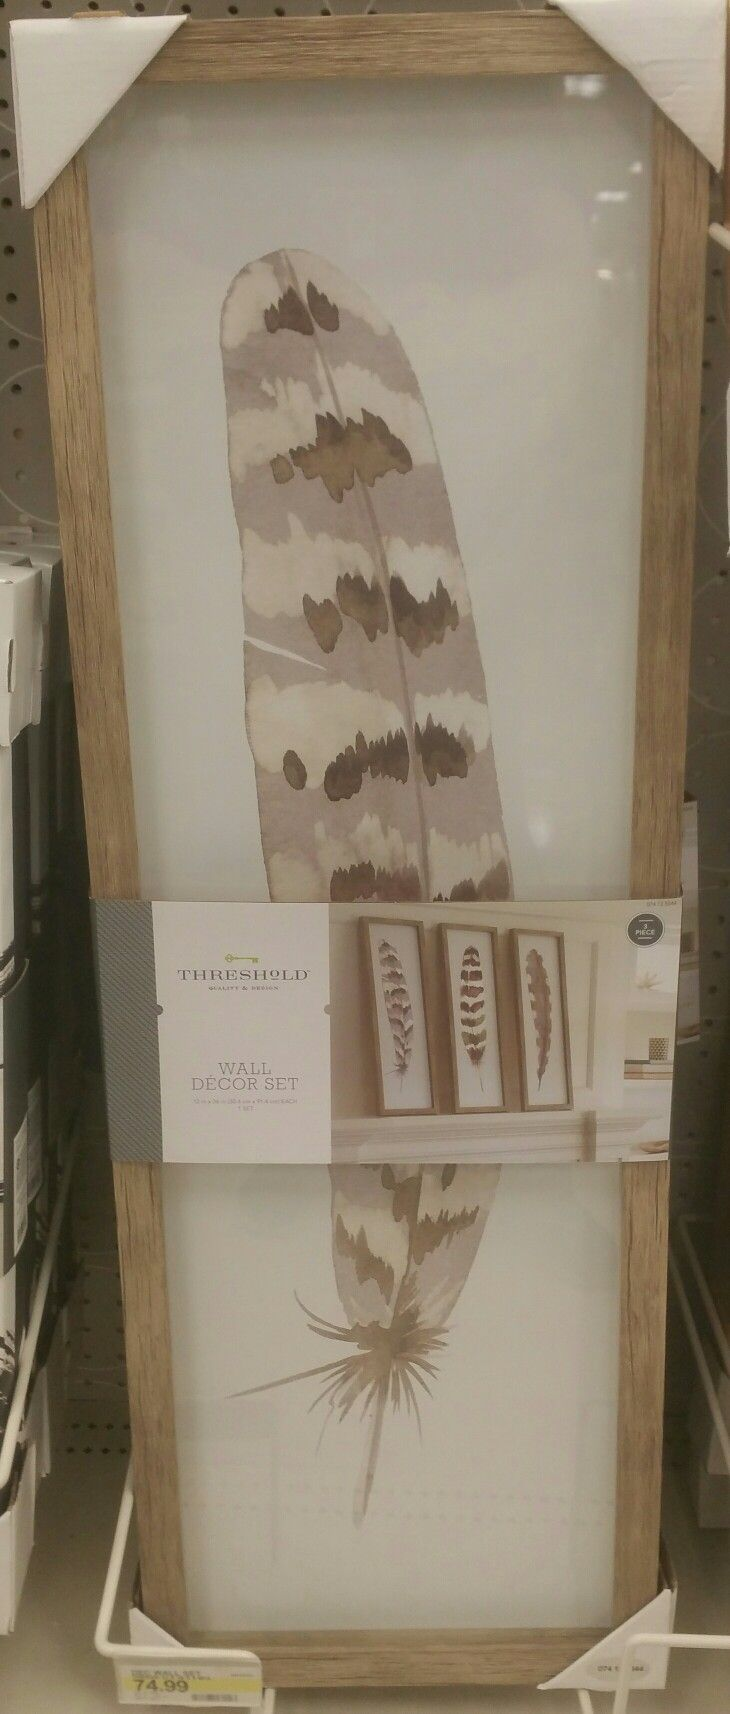 Set of 3 very large framed feathers has a watercolour look.  Target & Hobby Lobby. 11/17.